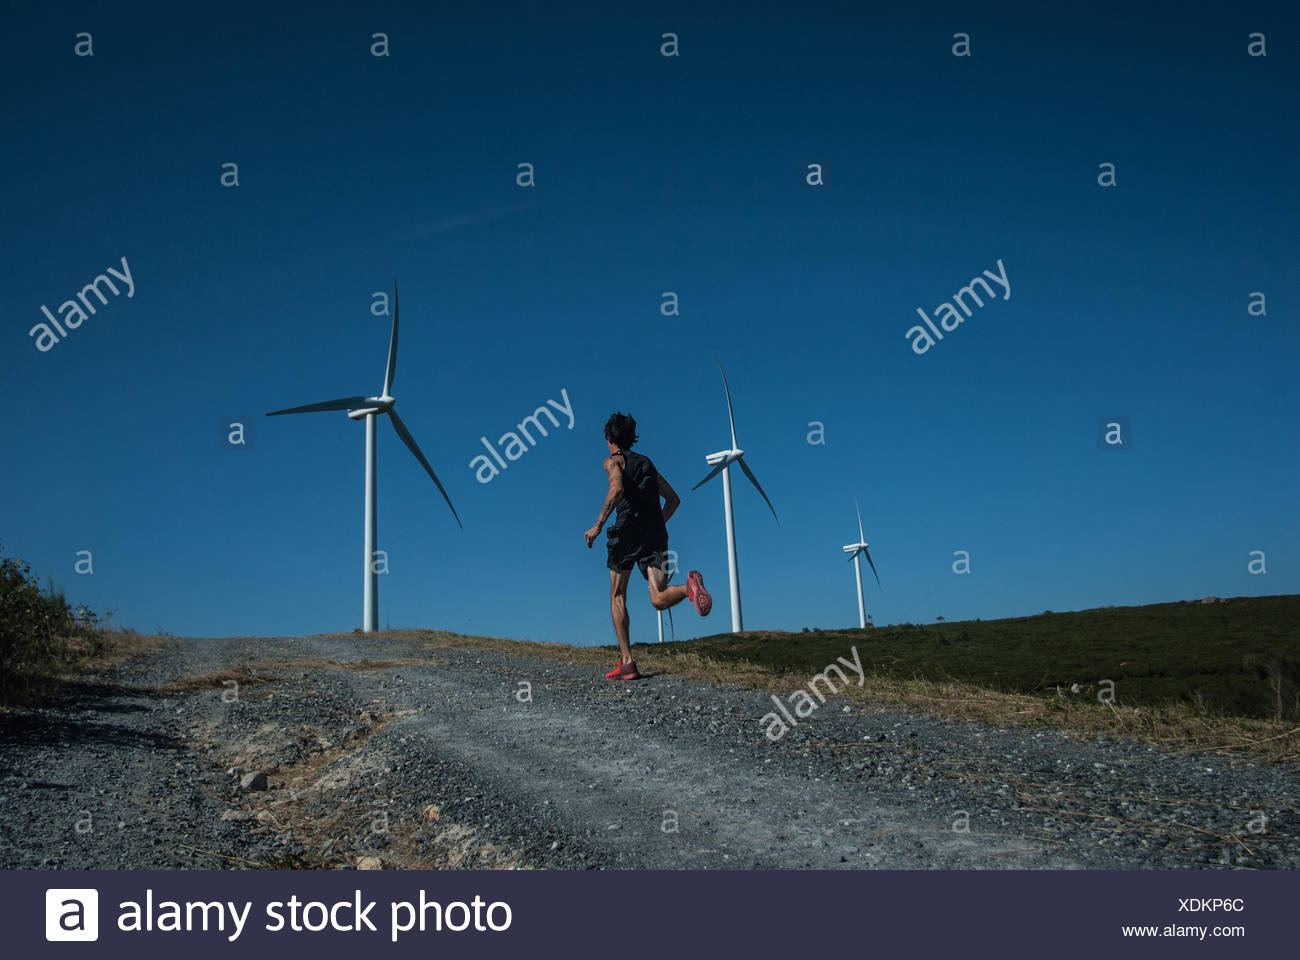 Mid adult man jogging on road, wind turbines in distance - Stock Image